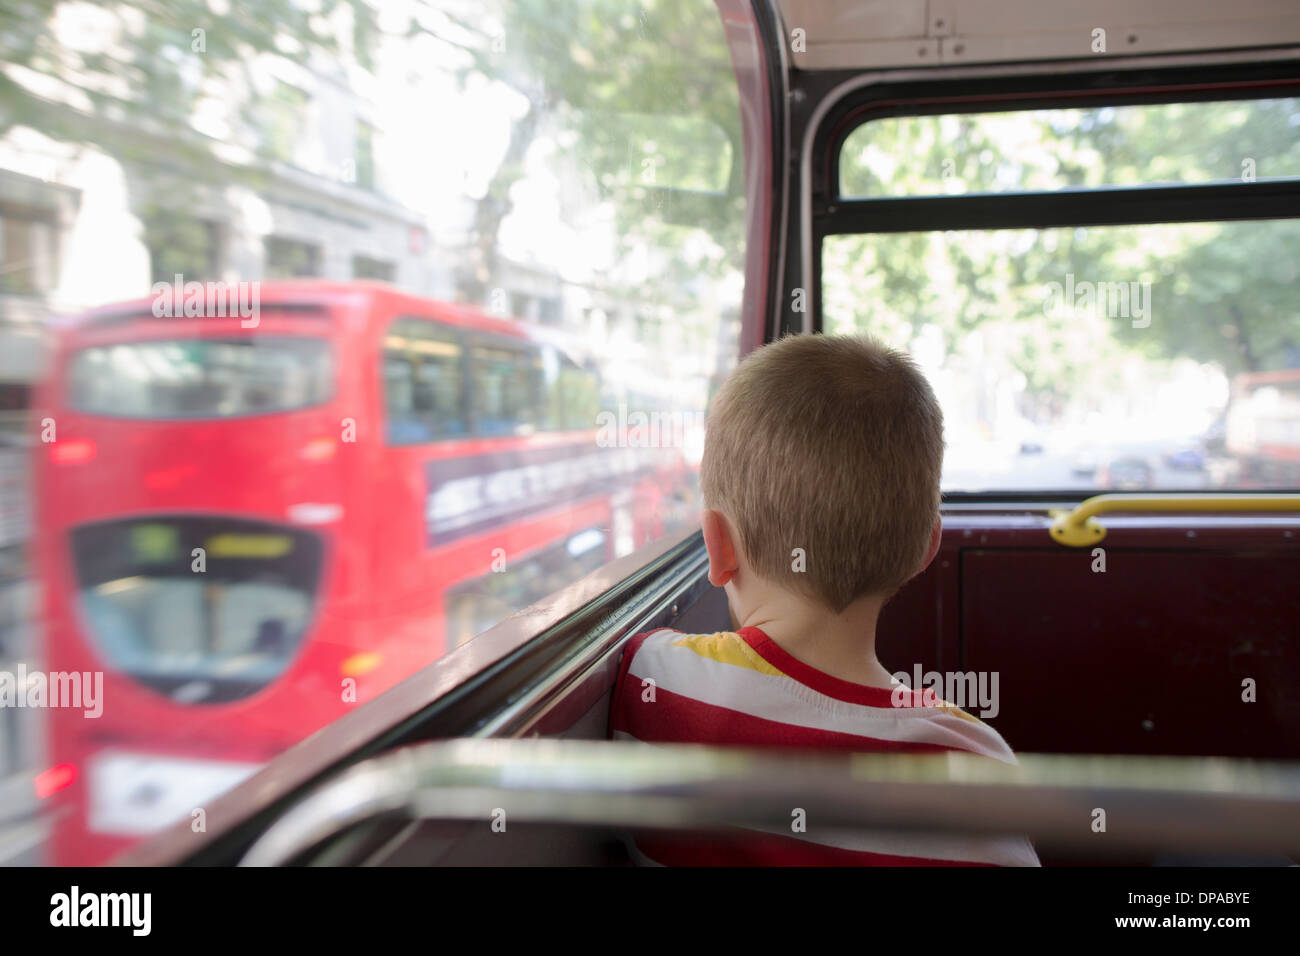 Young boy on double decker bus in London - Stock Image